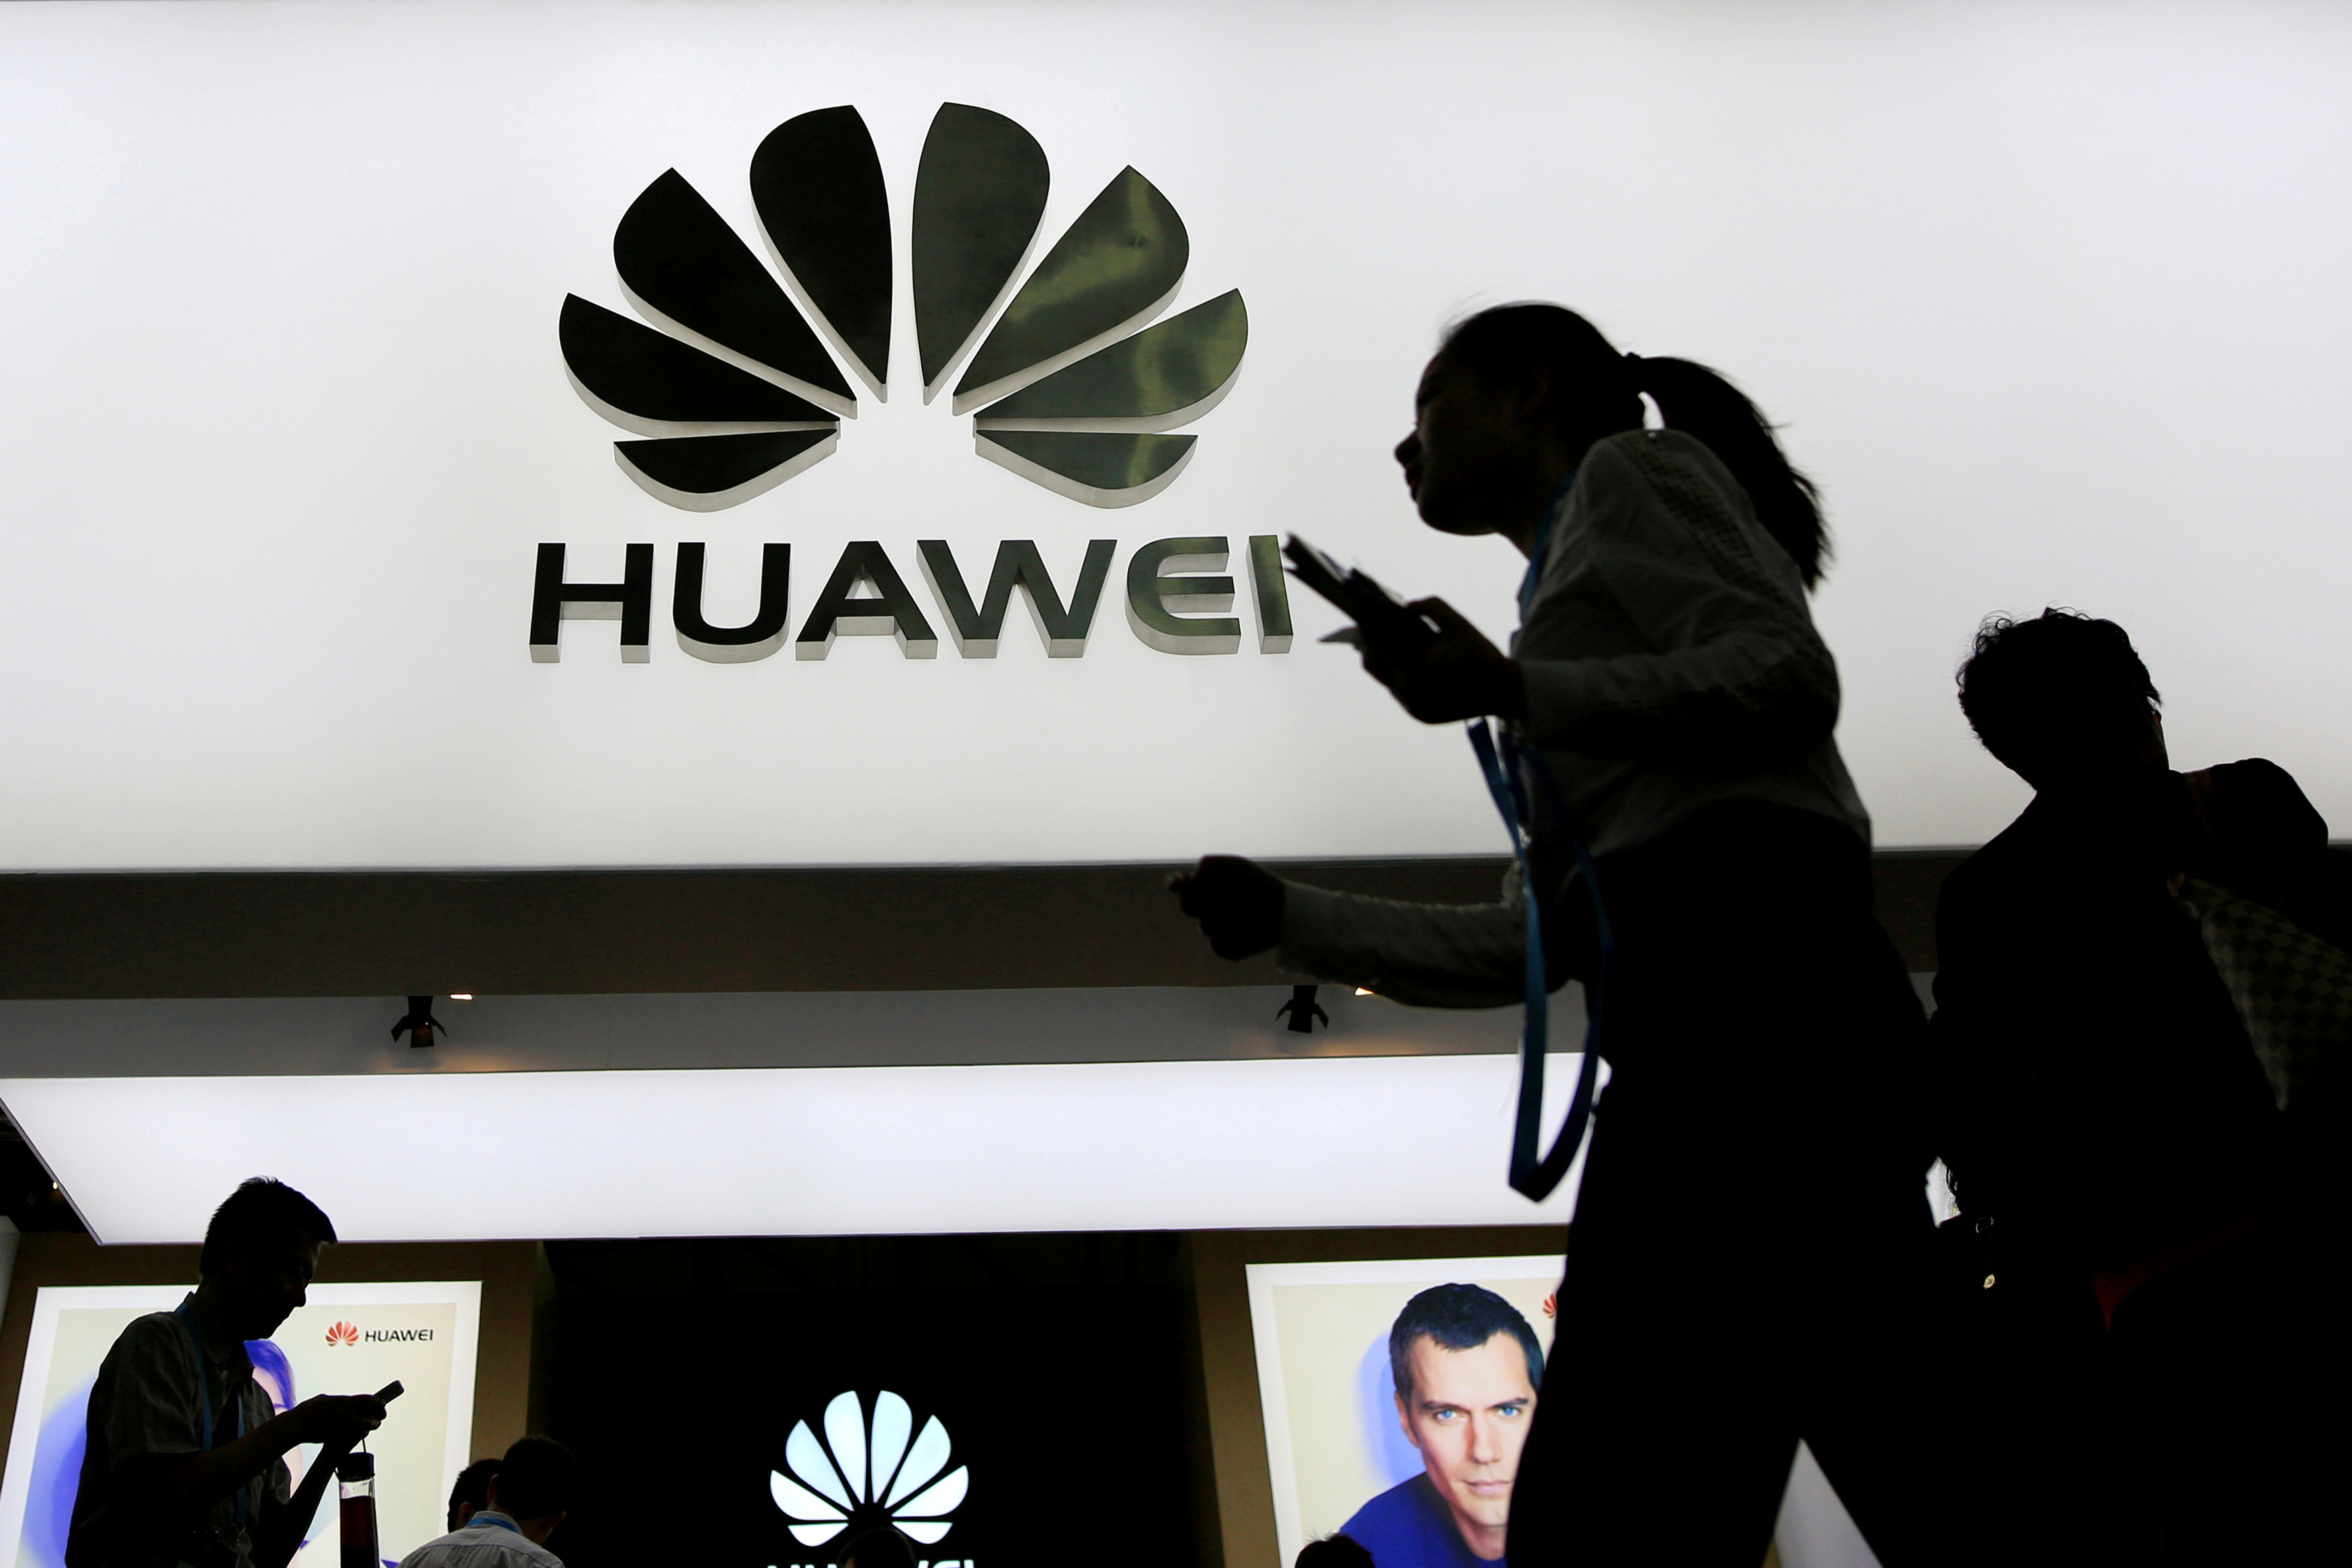 Huawei regains its position beats Oppo: Canalys